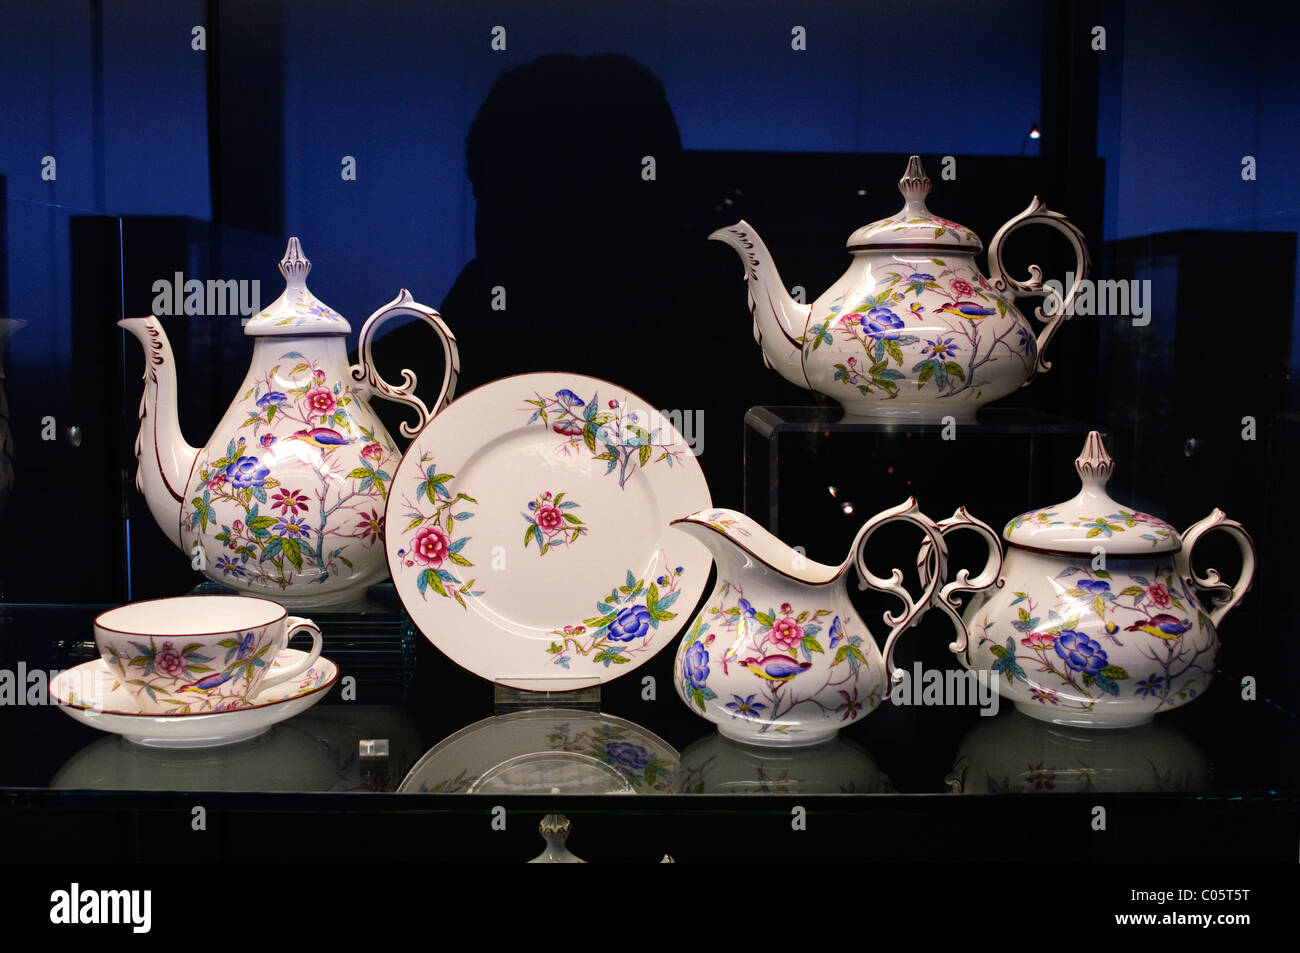 villeroy boch bone china tea service dating from the 1850 1865 stock. Black Bedroom Furniture Sets. Home Design Ideas